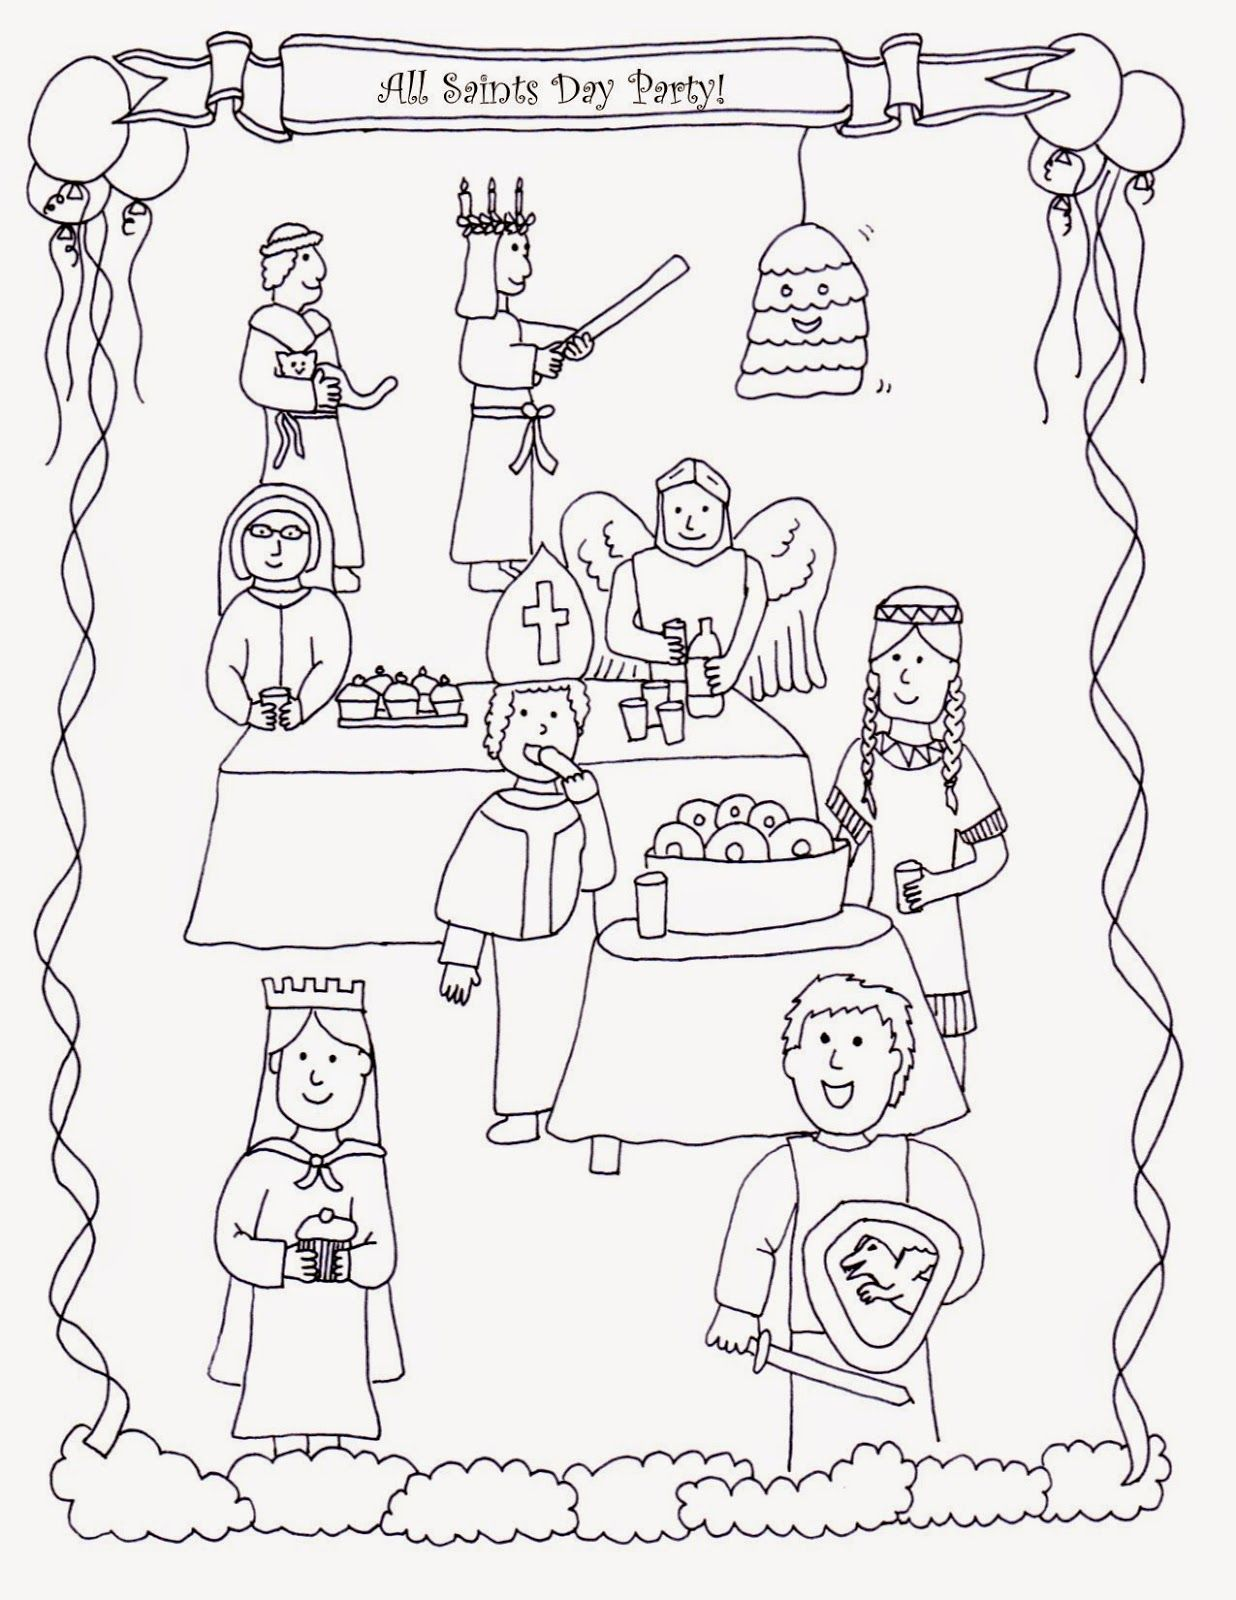 All Saints Day Coloring Pages Wi Ci